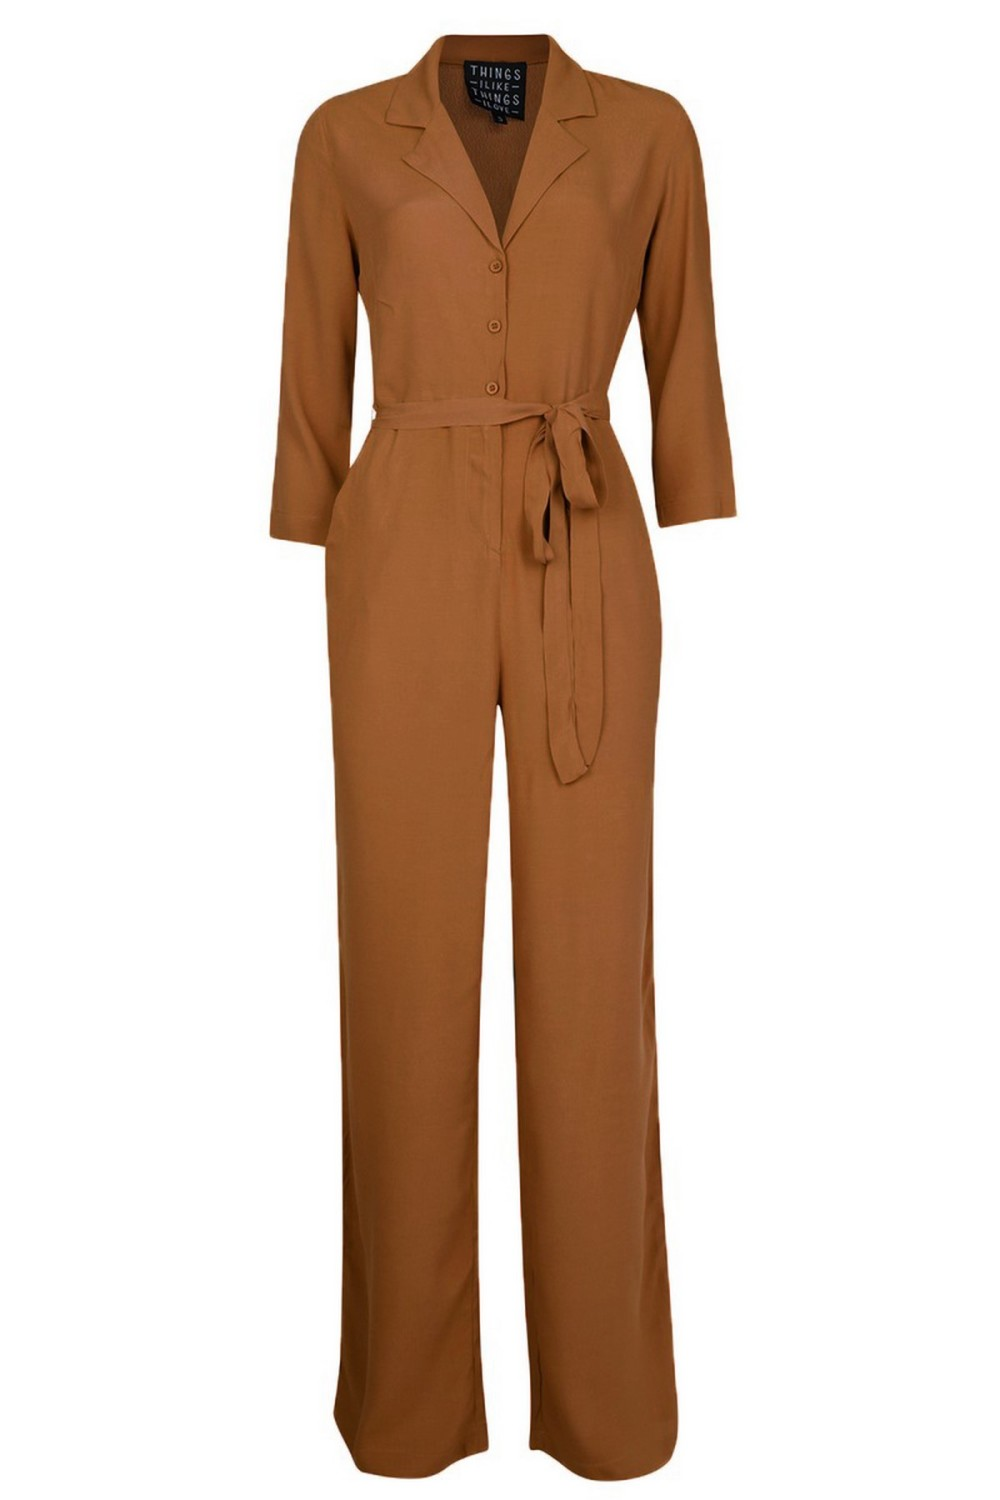 Things I Like Things I Love Jumpsuit & playsuit Bruin CARLY